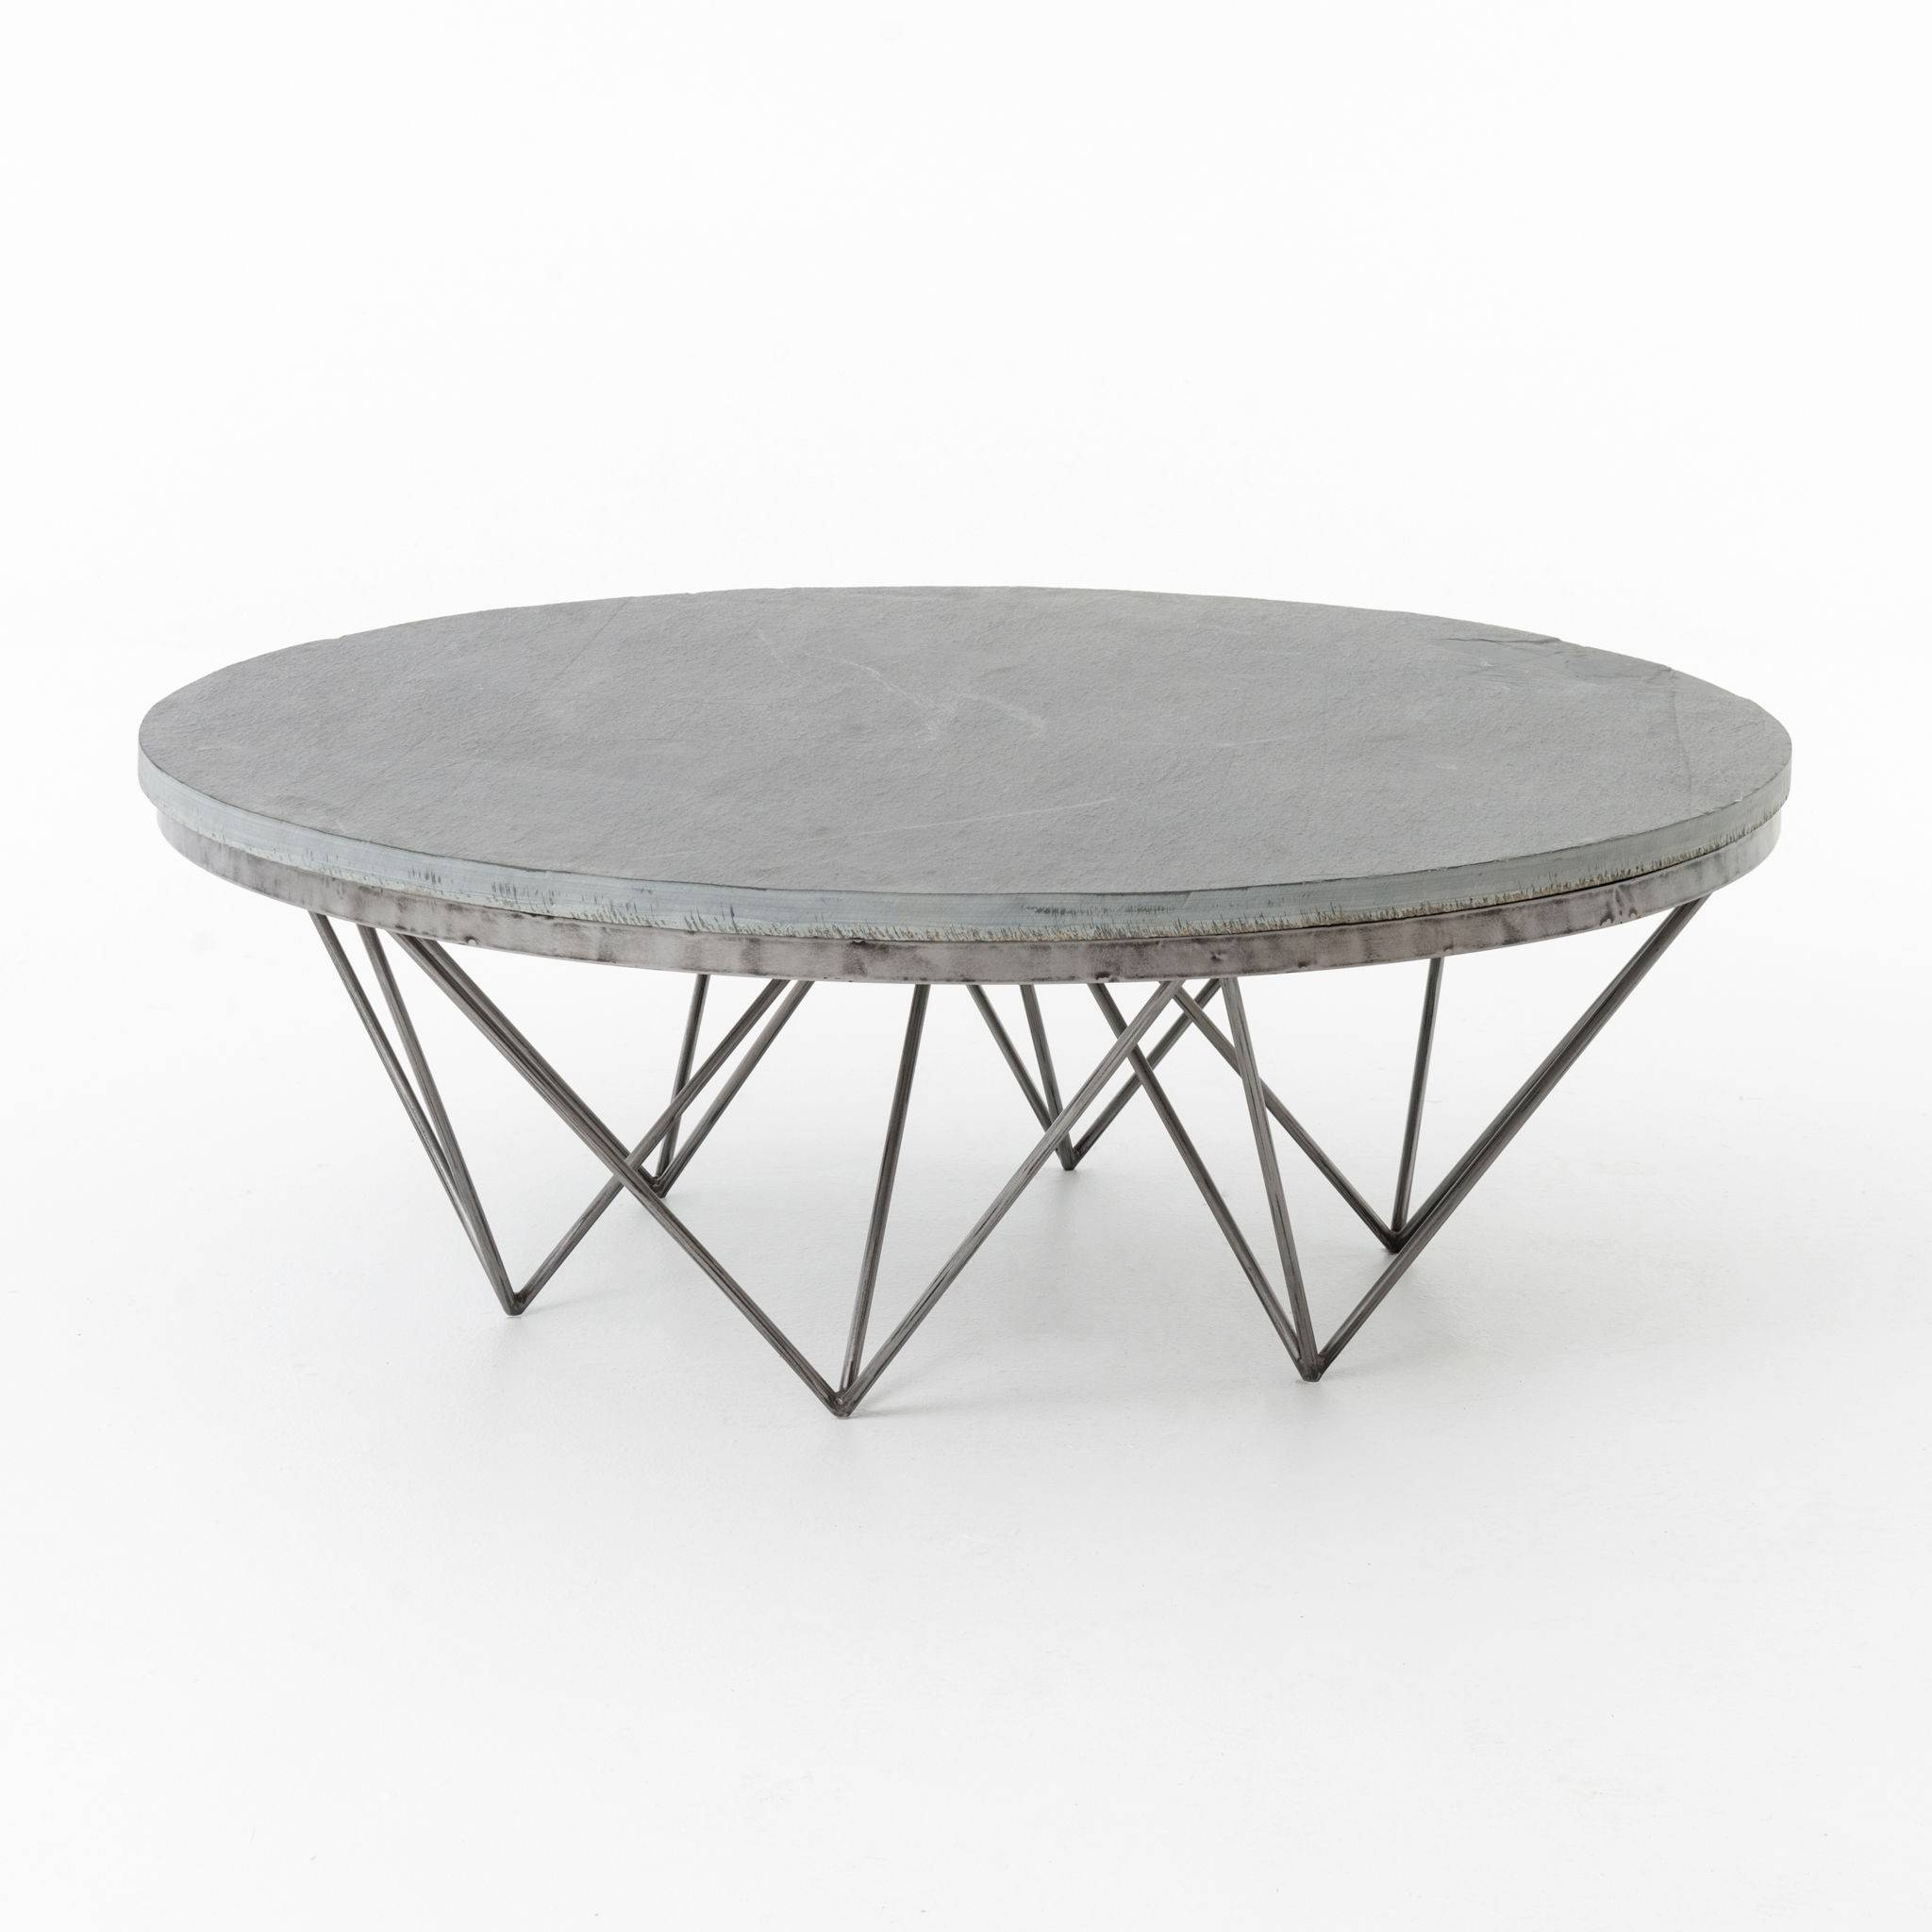 Modern Metal Coffee Table Bases | Coffee Tables Decoration intended for Round Steel Coffee Tables (Image 16 of 30)